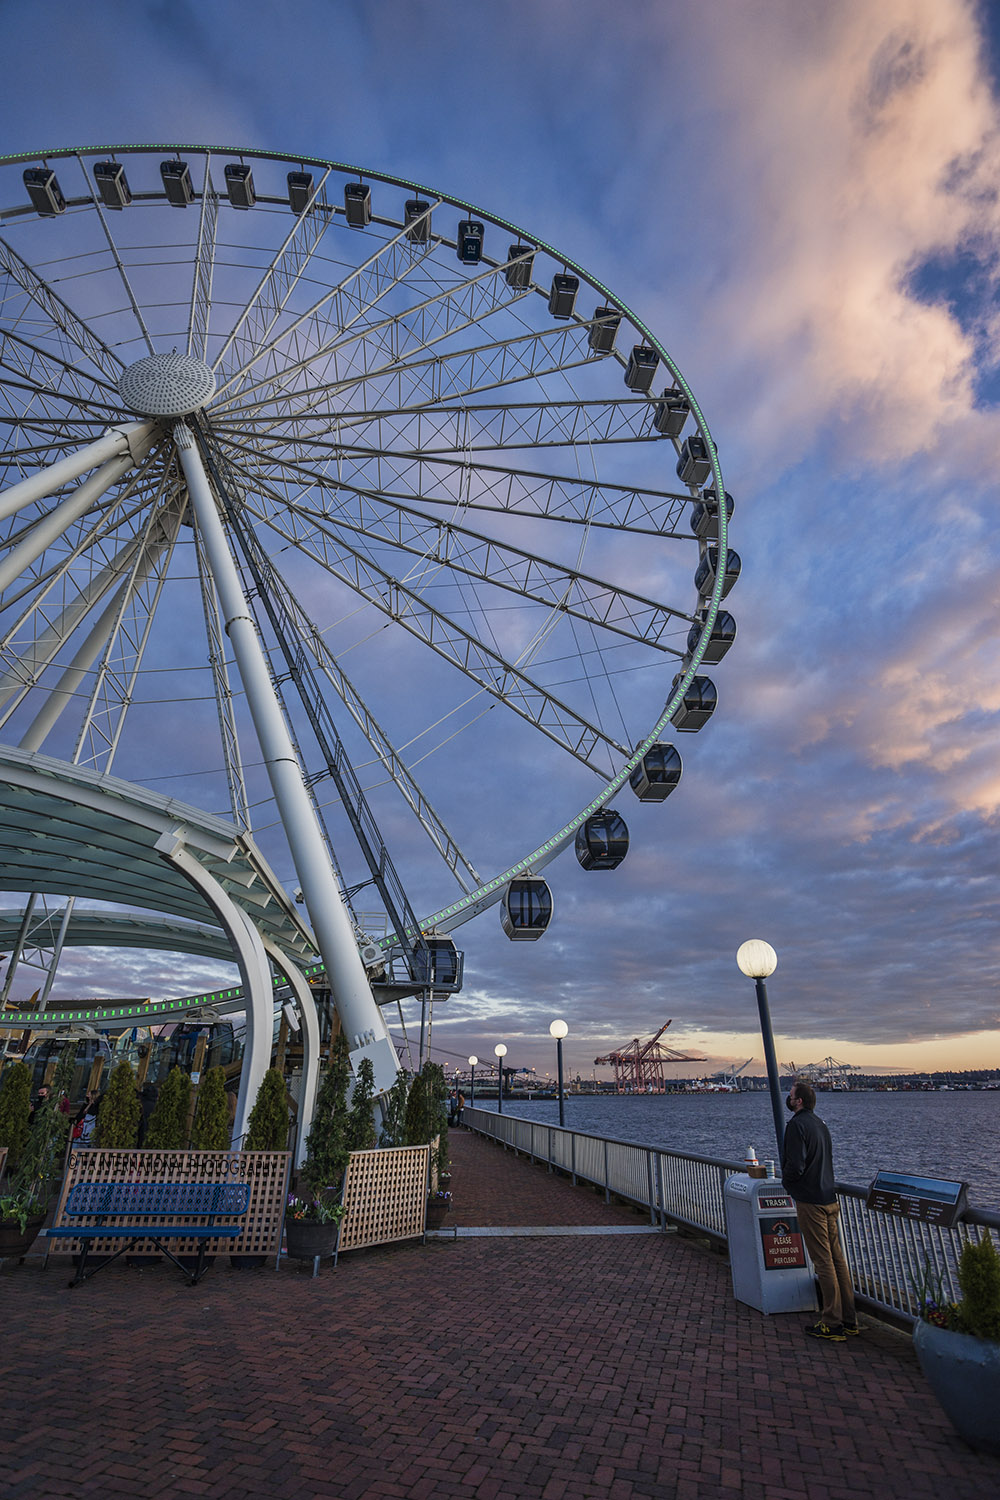 A pedestrian observes the Seattle Great Wheel at Pier 57.